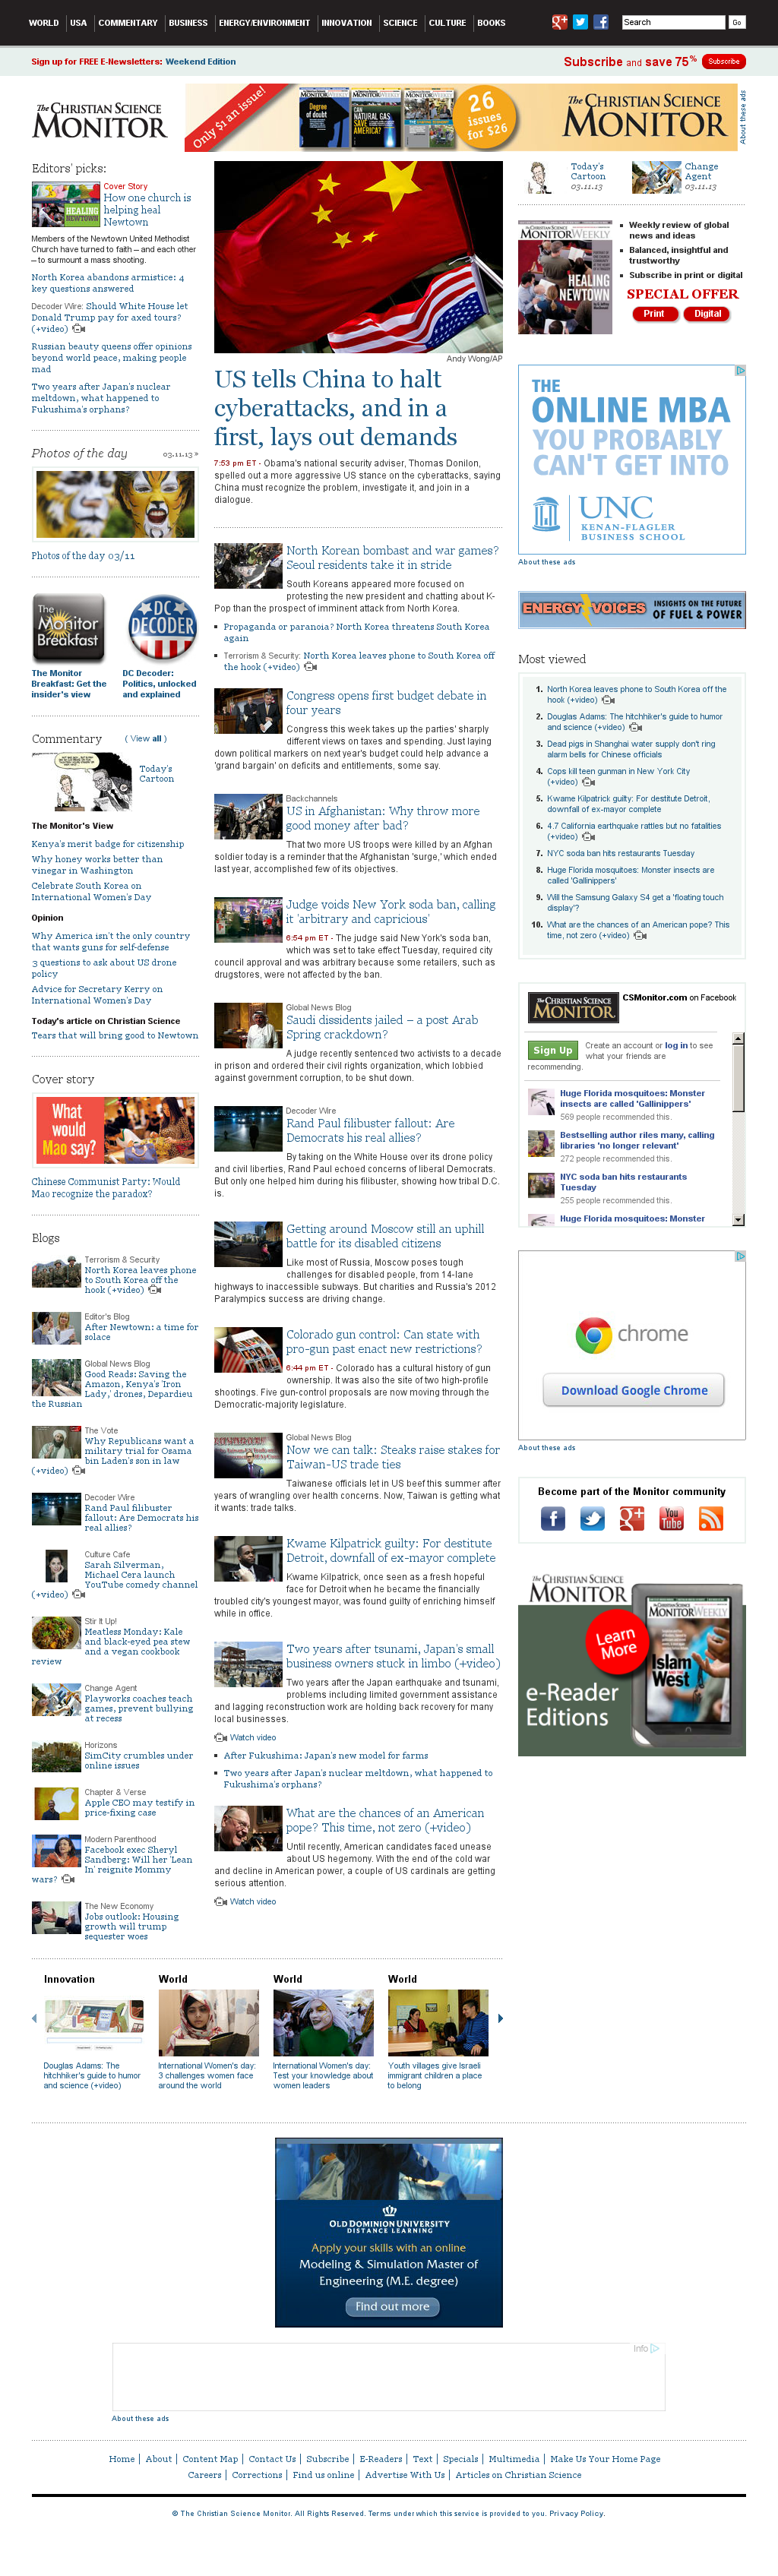 The Christian Science Monitor at Tuesday March 12, 2013, 1:03 a.m. UTC